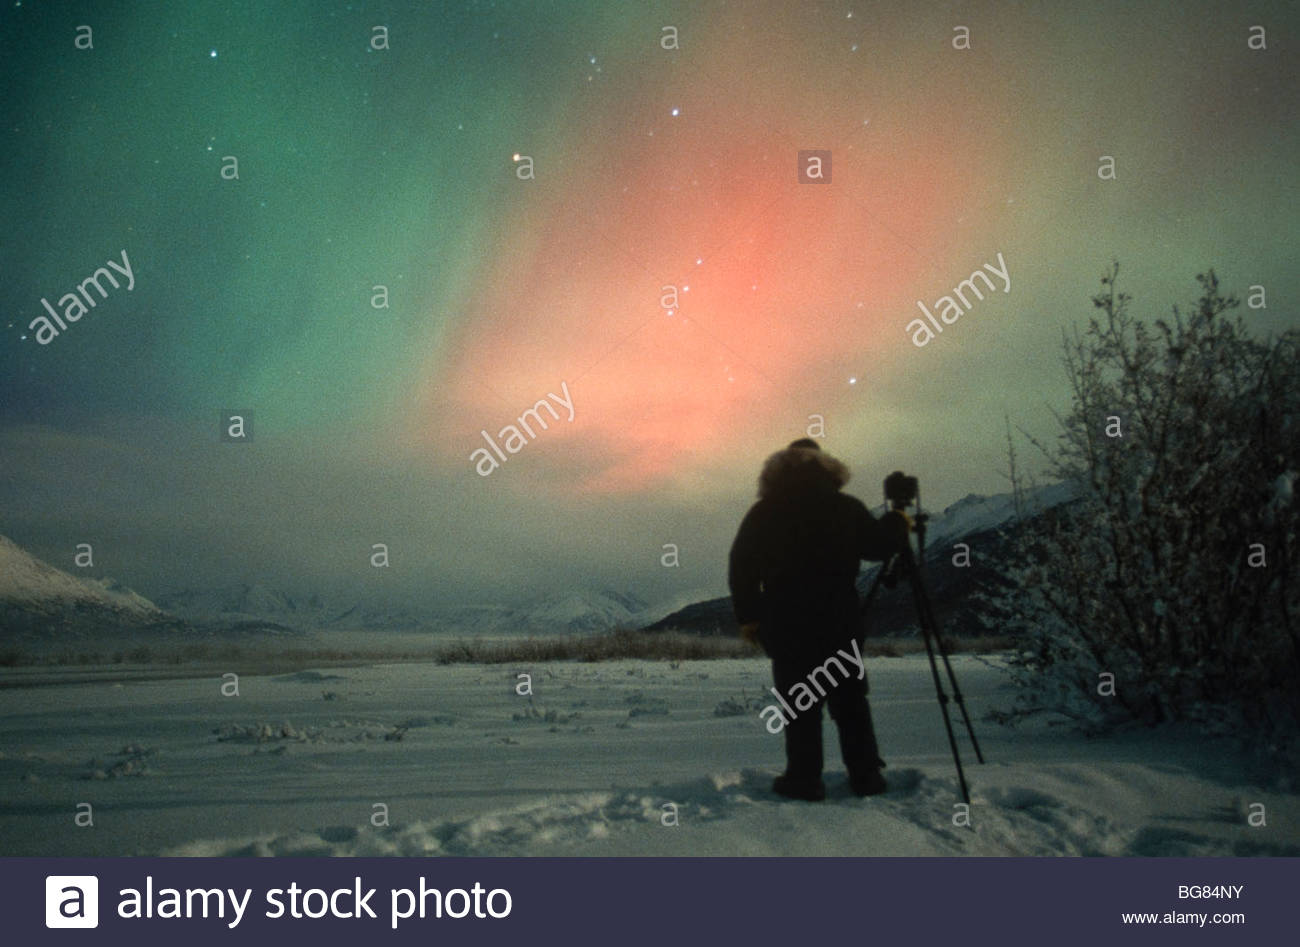 Alaska. Aurora borealis or northern lights observed by photographer Cary Anderson. - Stock Image